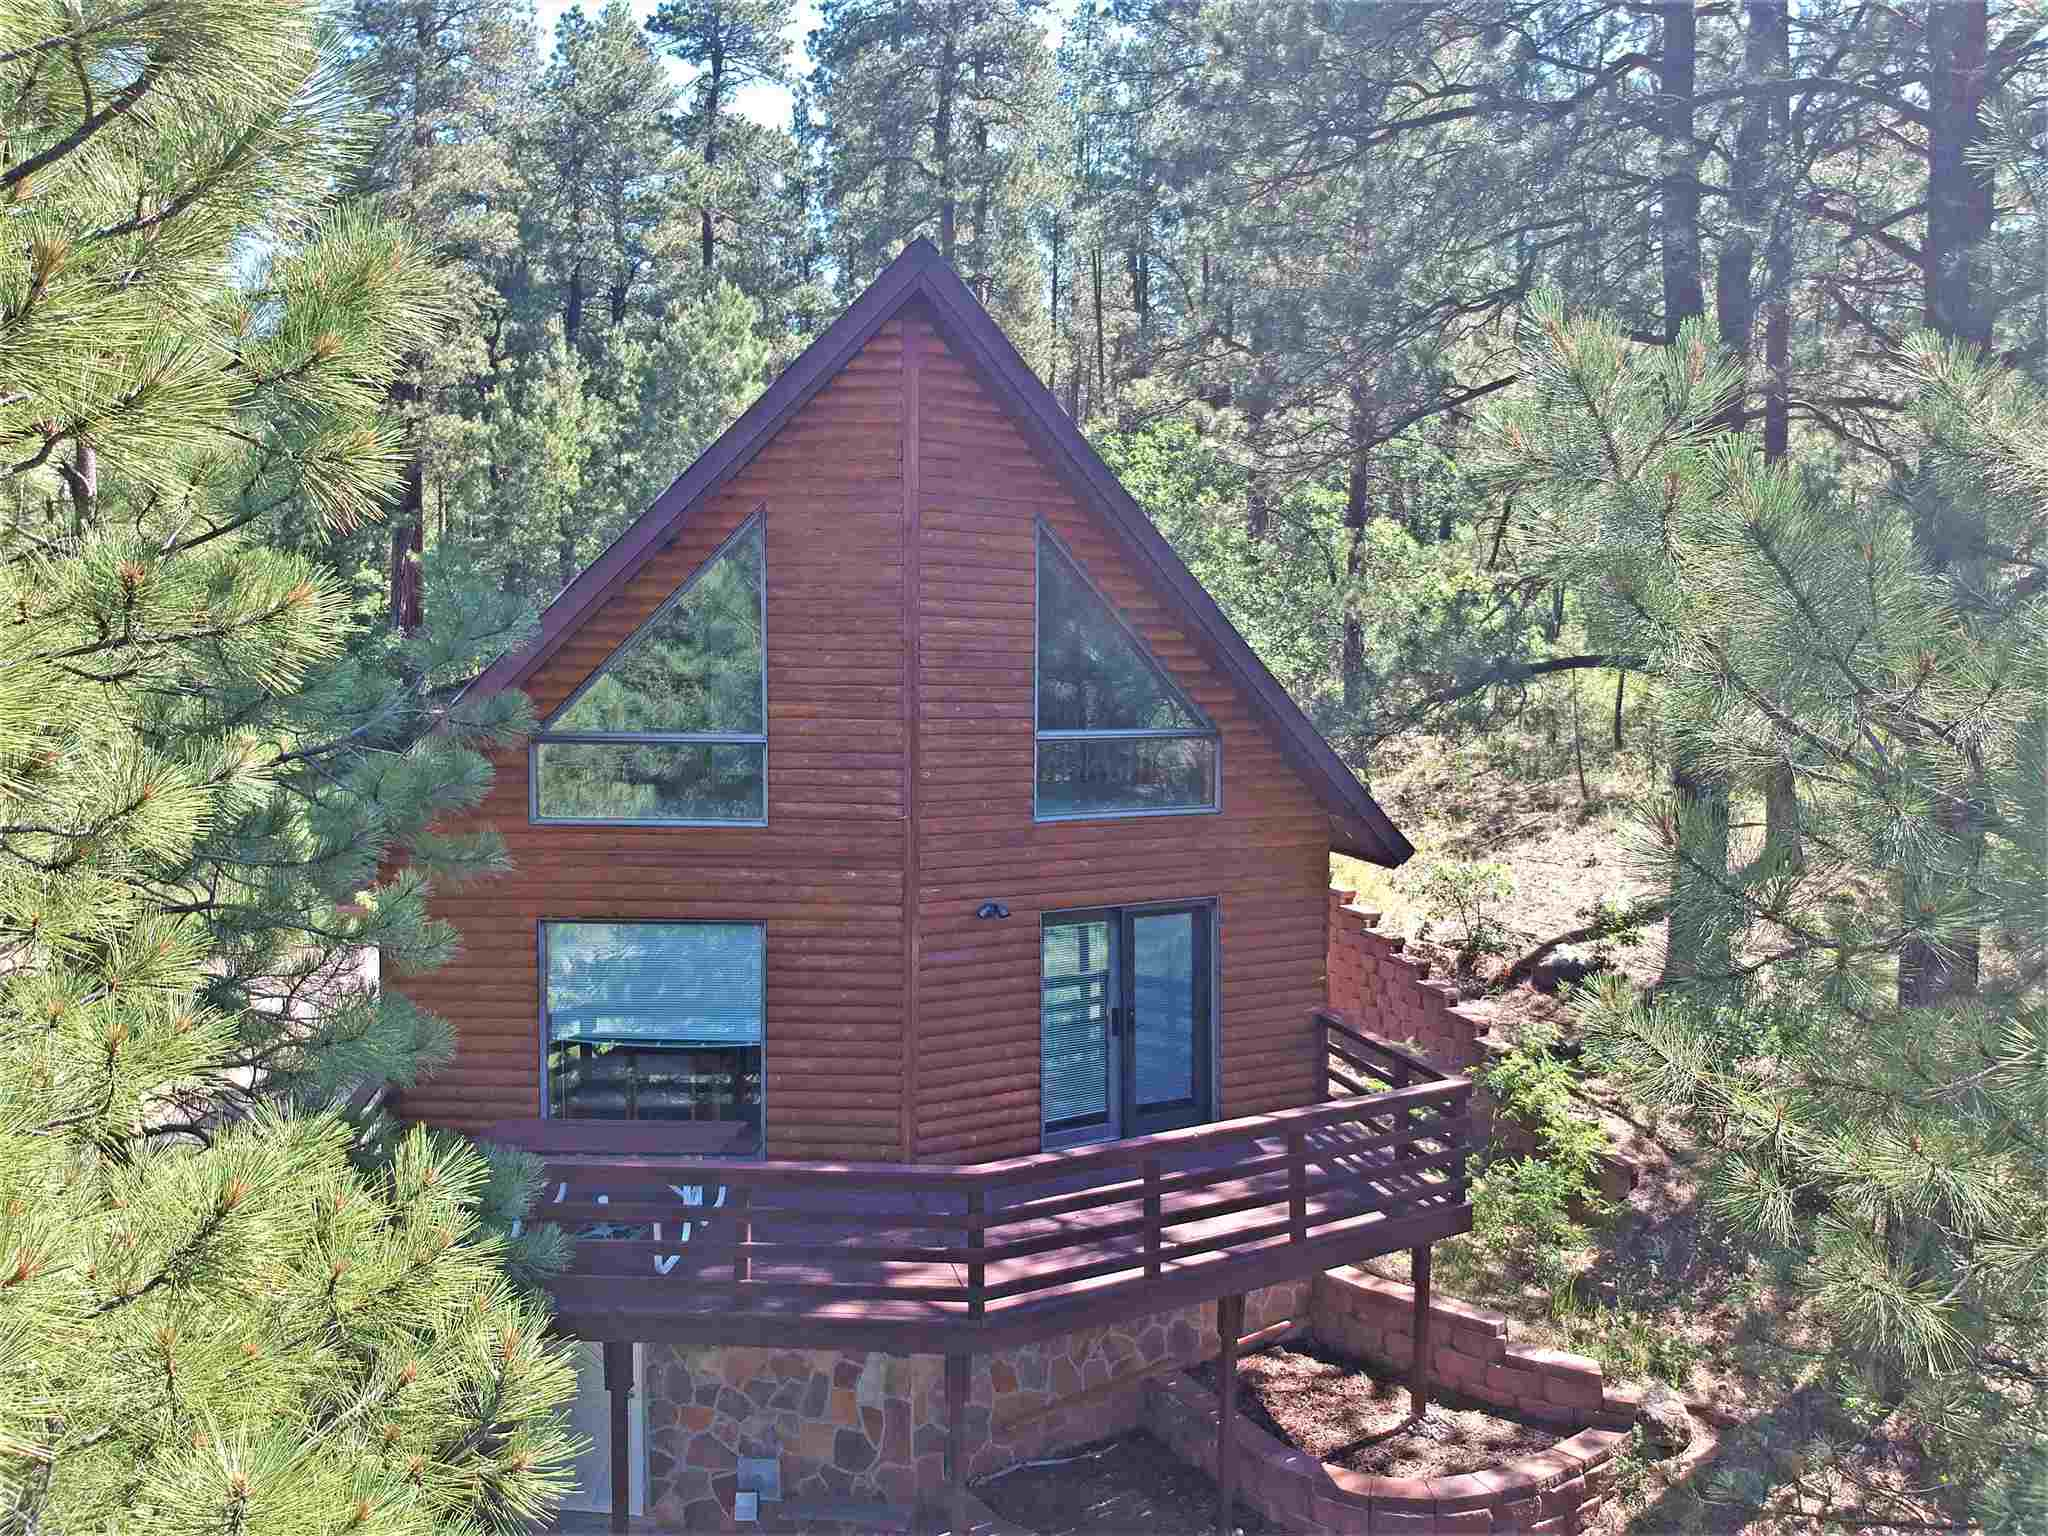 Step out the back yard into the Santa Fe National Forest! A few steps further, you're on the Valles Caldera National Preserve. What an opportunity for a mighty big ''back yard''!! DON'T MISS IT!!! Commute to Los Alamos in 30 minutes or so! Ample room to spread out inside too! 3 fabulous levels to play with! Game room? Library/study? Guest rooms? BEAUTIFUL upper level has a big bedroom, PLUS a LOVELY bonus room with wonderful floor to ceiling windows, really great for almost anything! Main level is 2 good sized bedrooms, full bath and sweet, open kitchen/dining/living opening to a deck that will have you pining for the pines! Lower level is 2 more bedrooms, 3/4 bath and again...BIG space for whatever you need it to be! Beautifully maintained home...move-in ready, All furnishings can stay!!